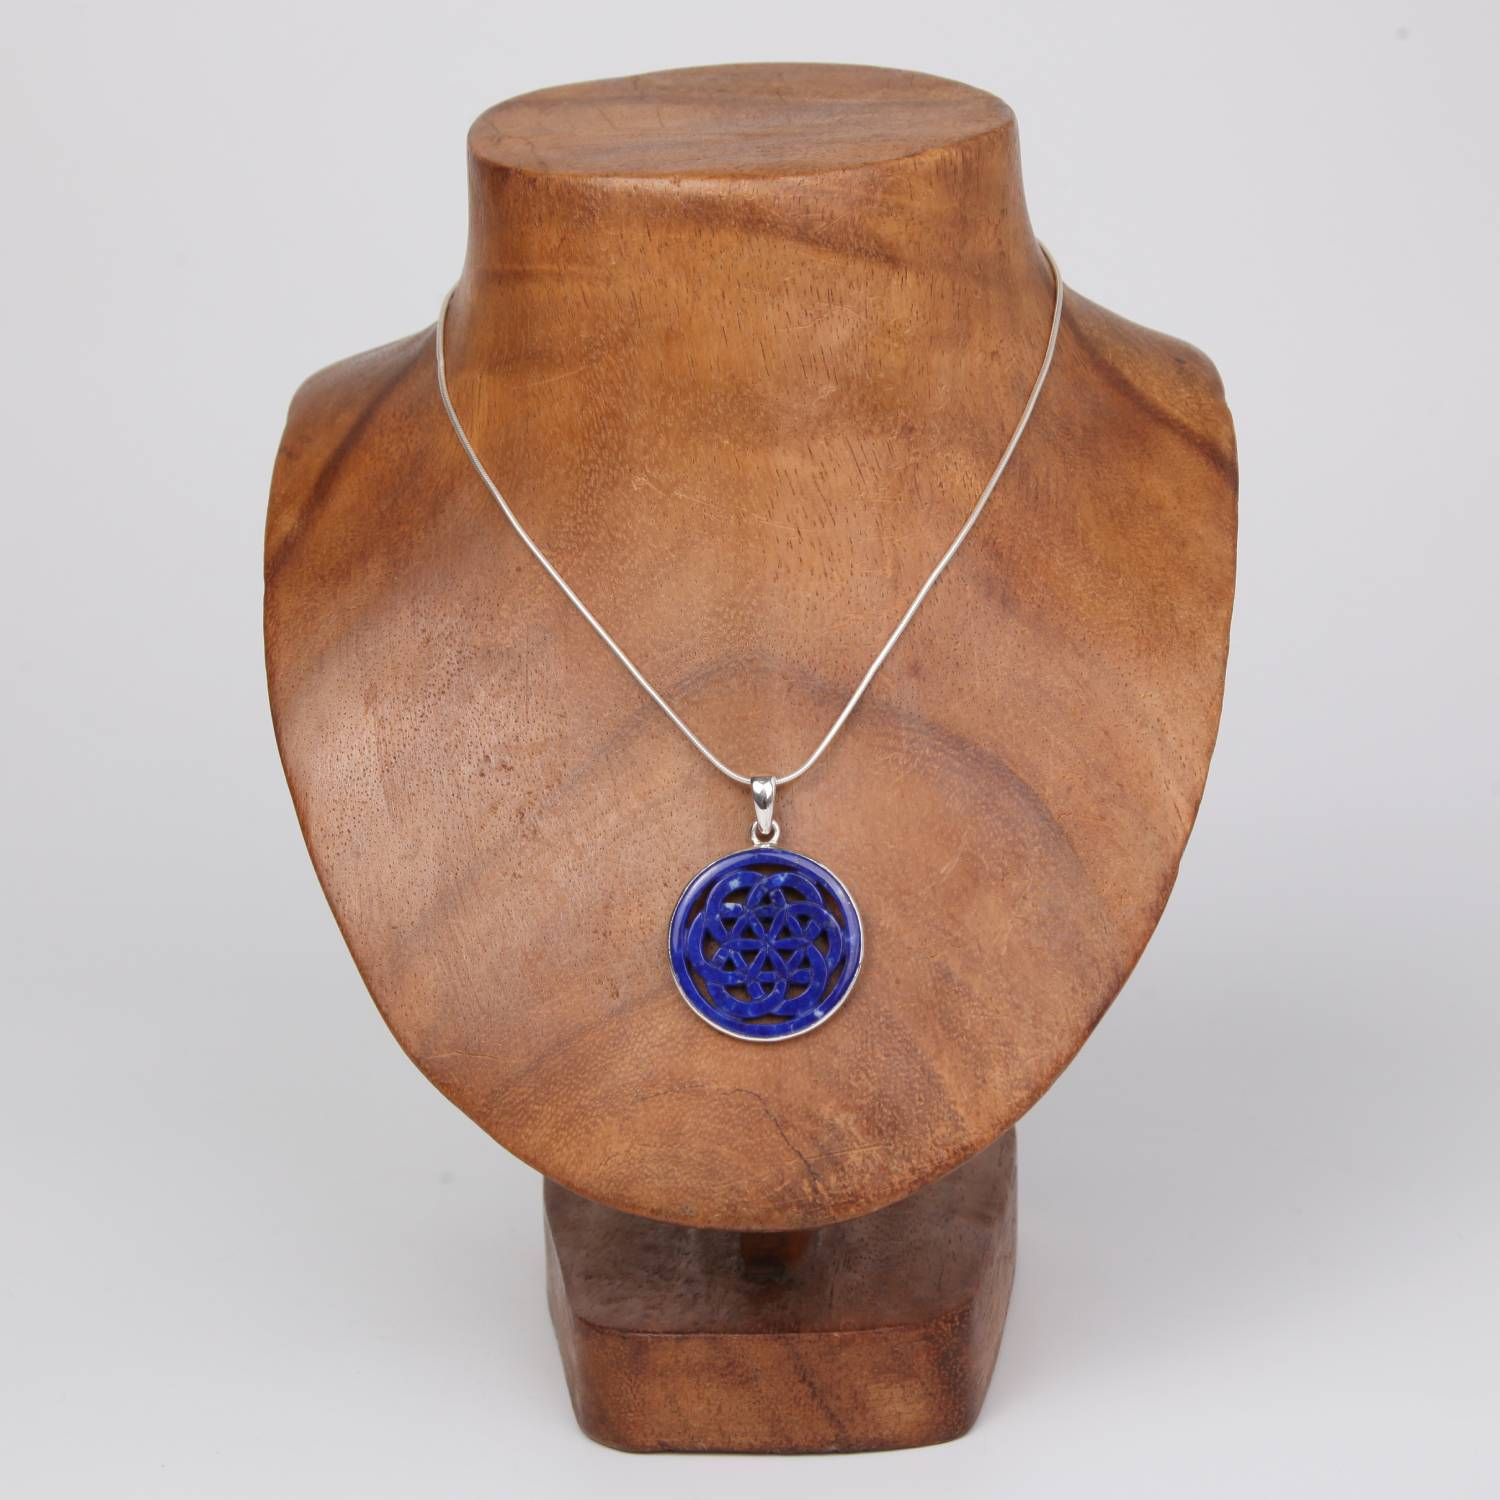 Sterling Silver Pendant with Lapis Lazuli (Flower of Life)